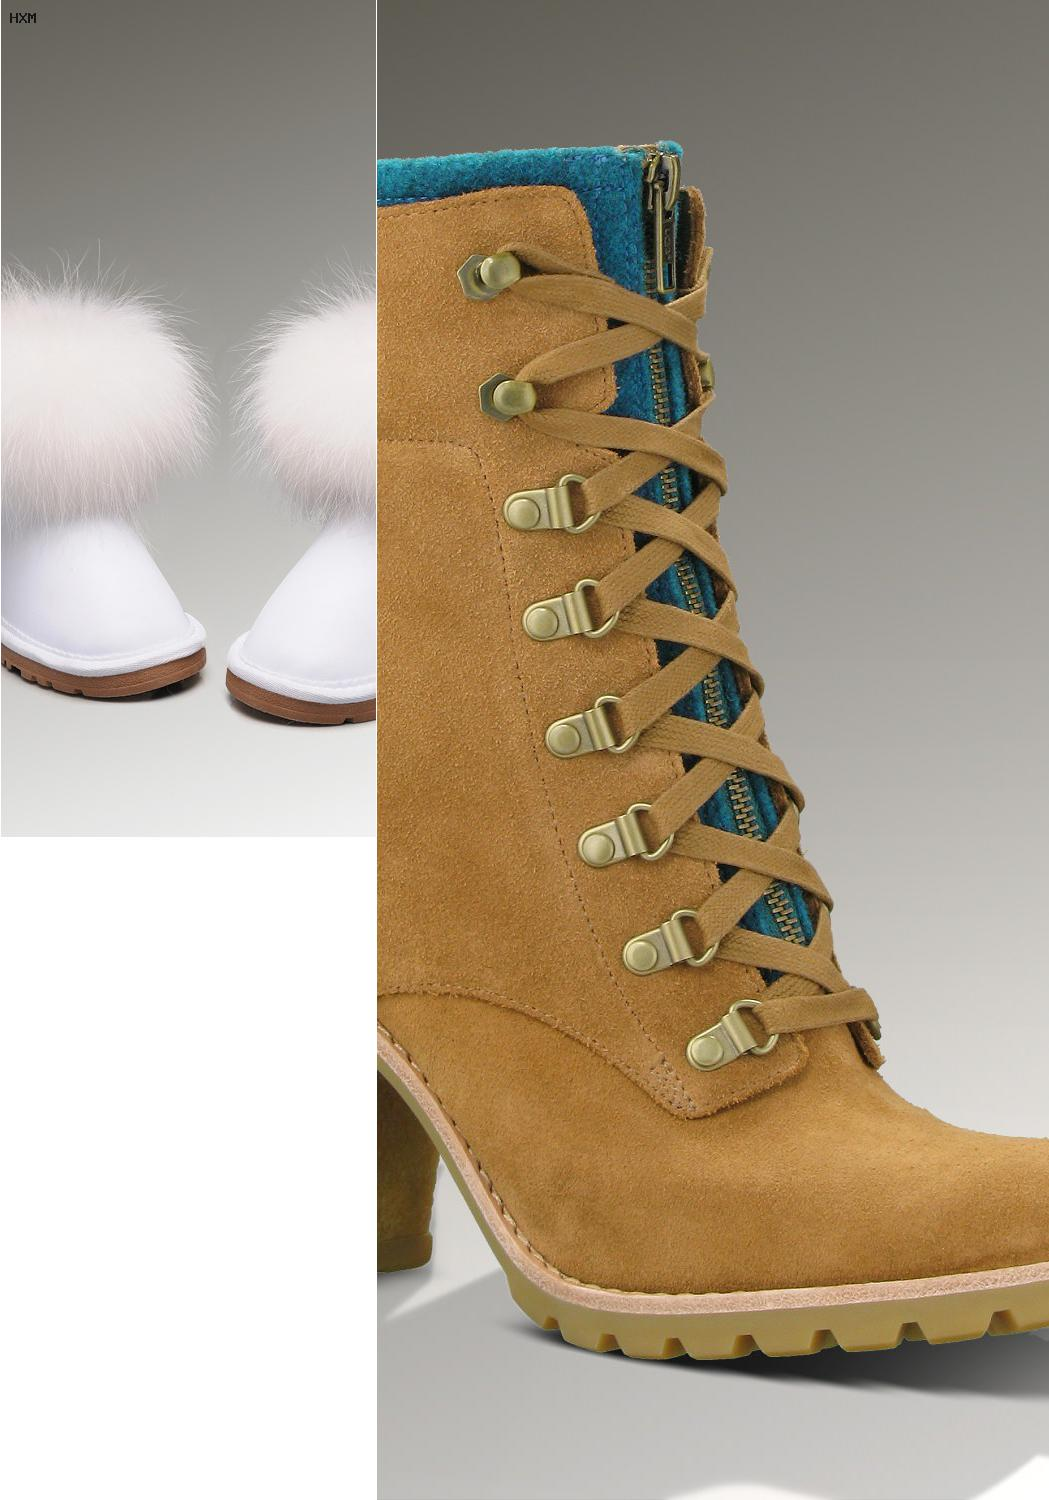 outlet botas ugg chile